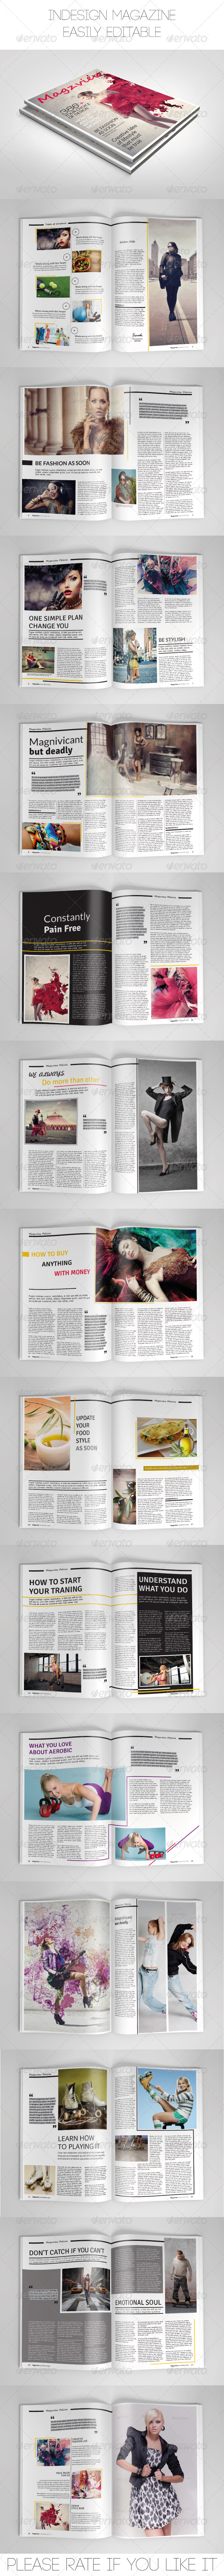 GraphicRiver Magzview Magazine Template 8107271